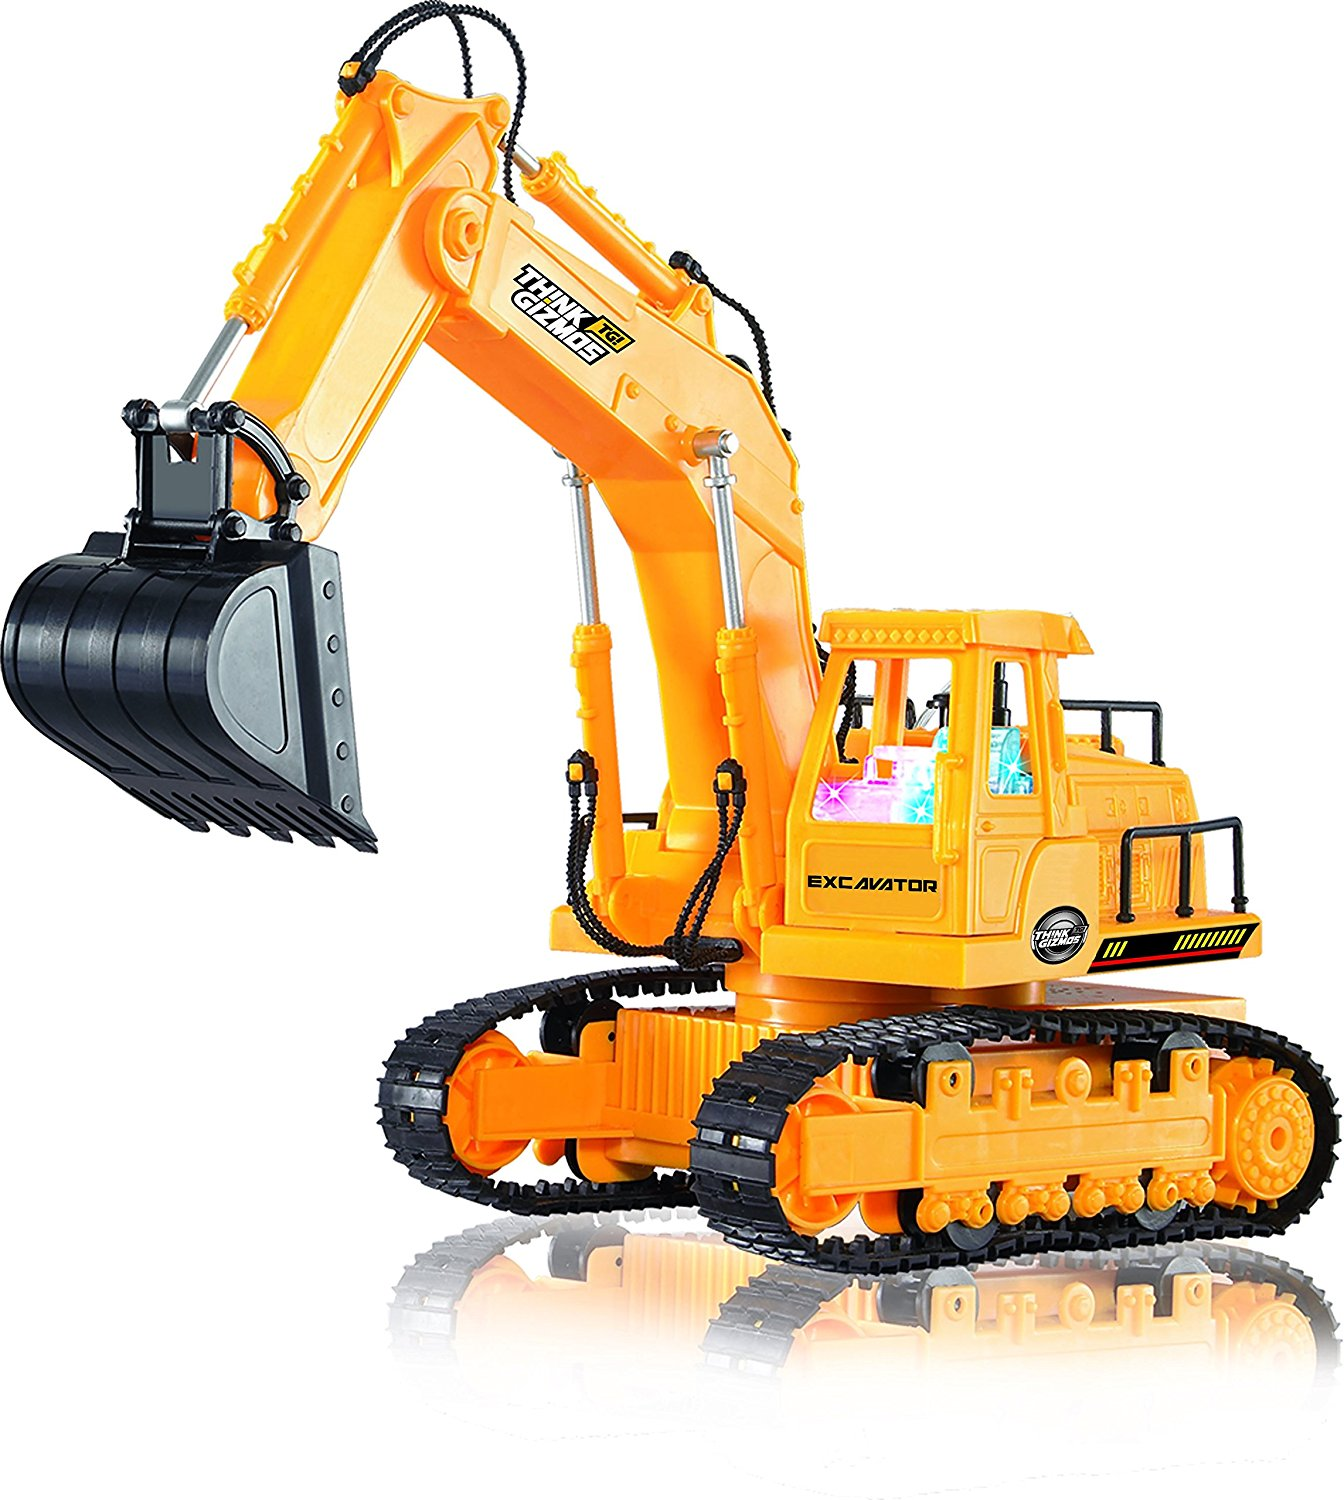 Amazon.com: Remote Control Toy Excavator Construction Vehicle TG643 ...